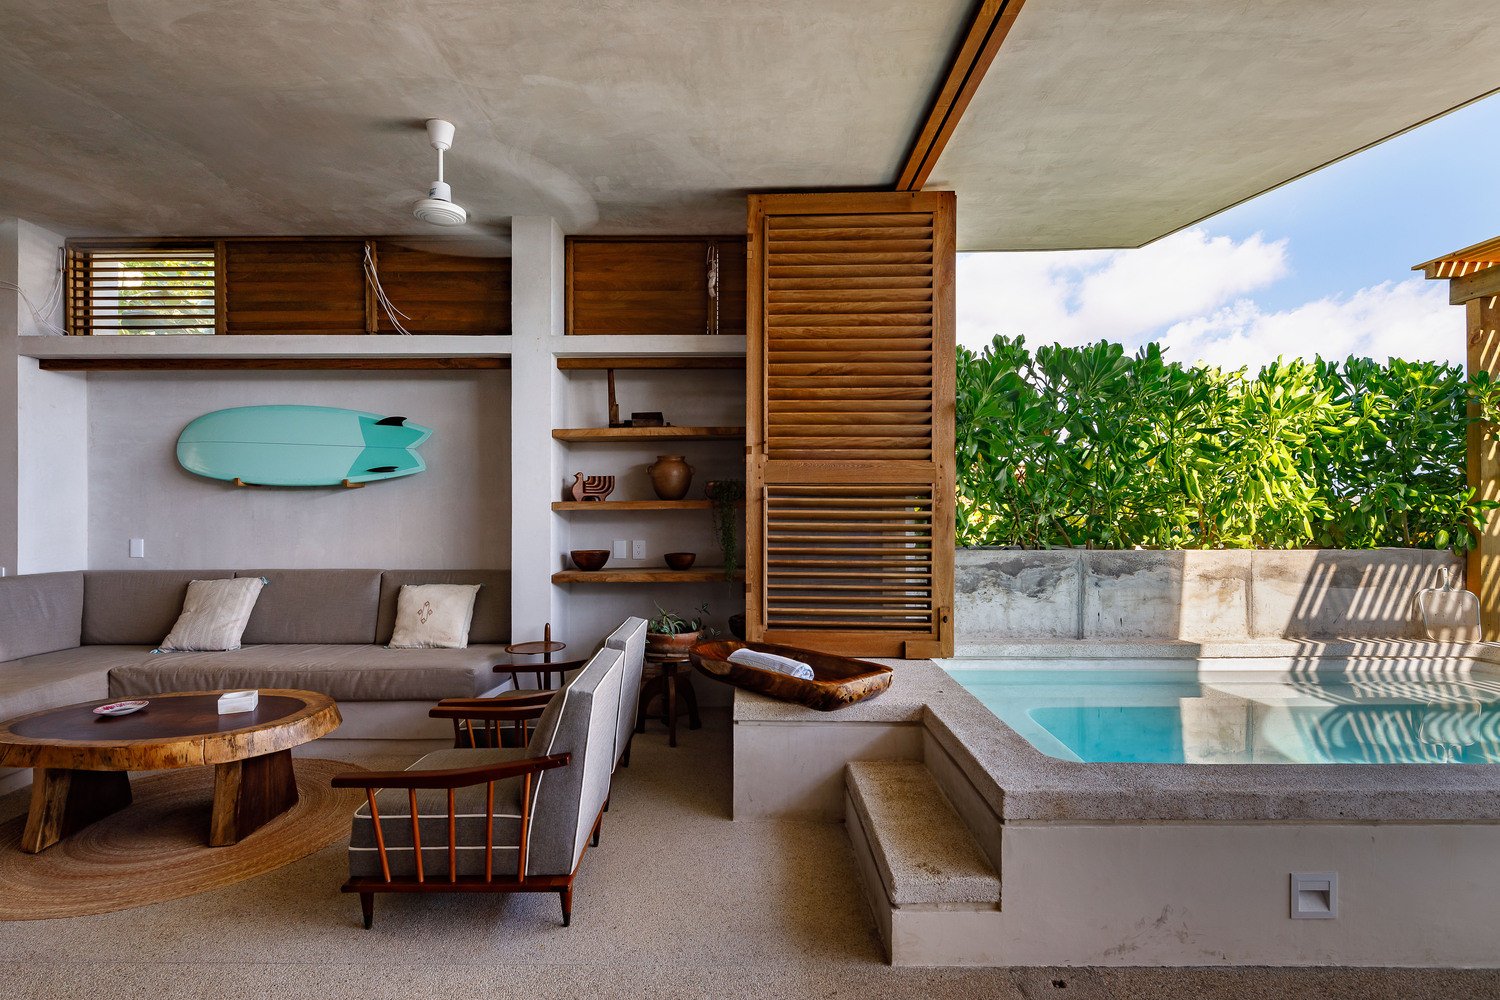 Pool and Livng Room